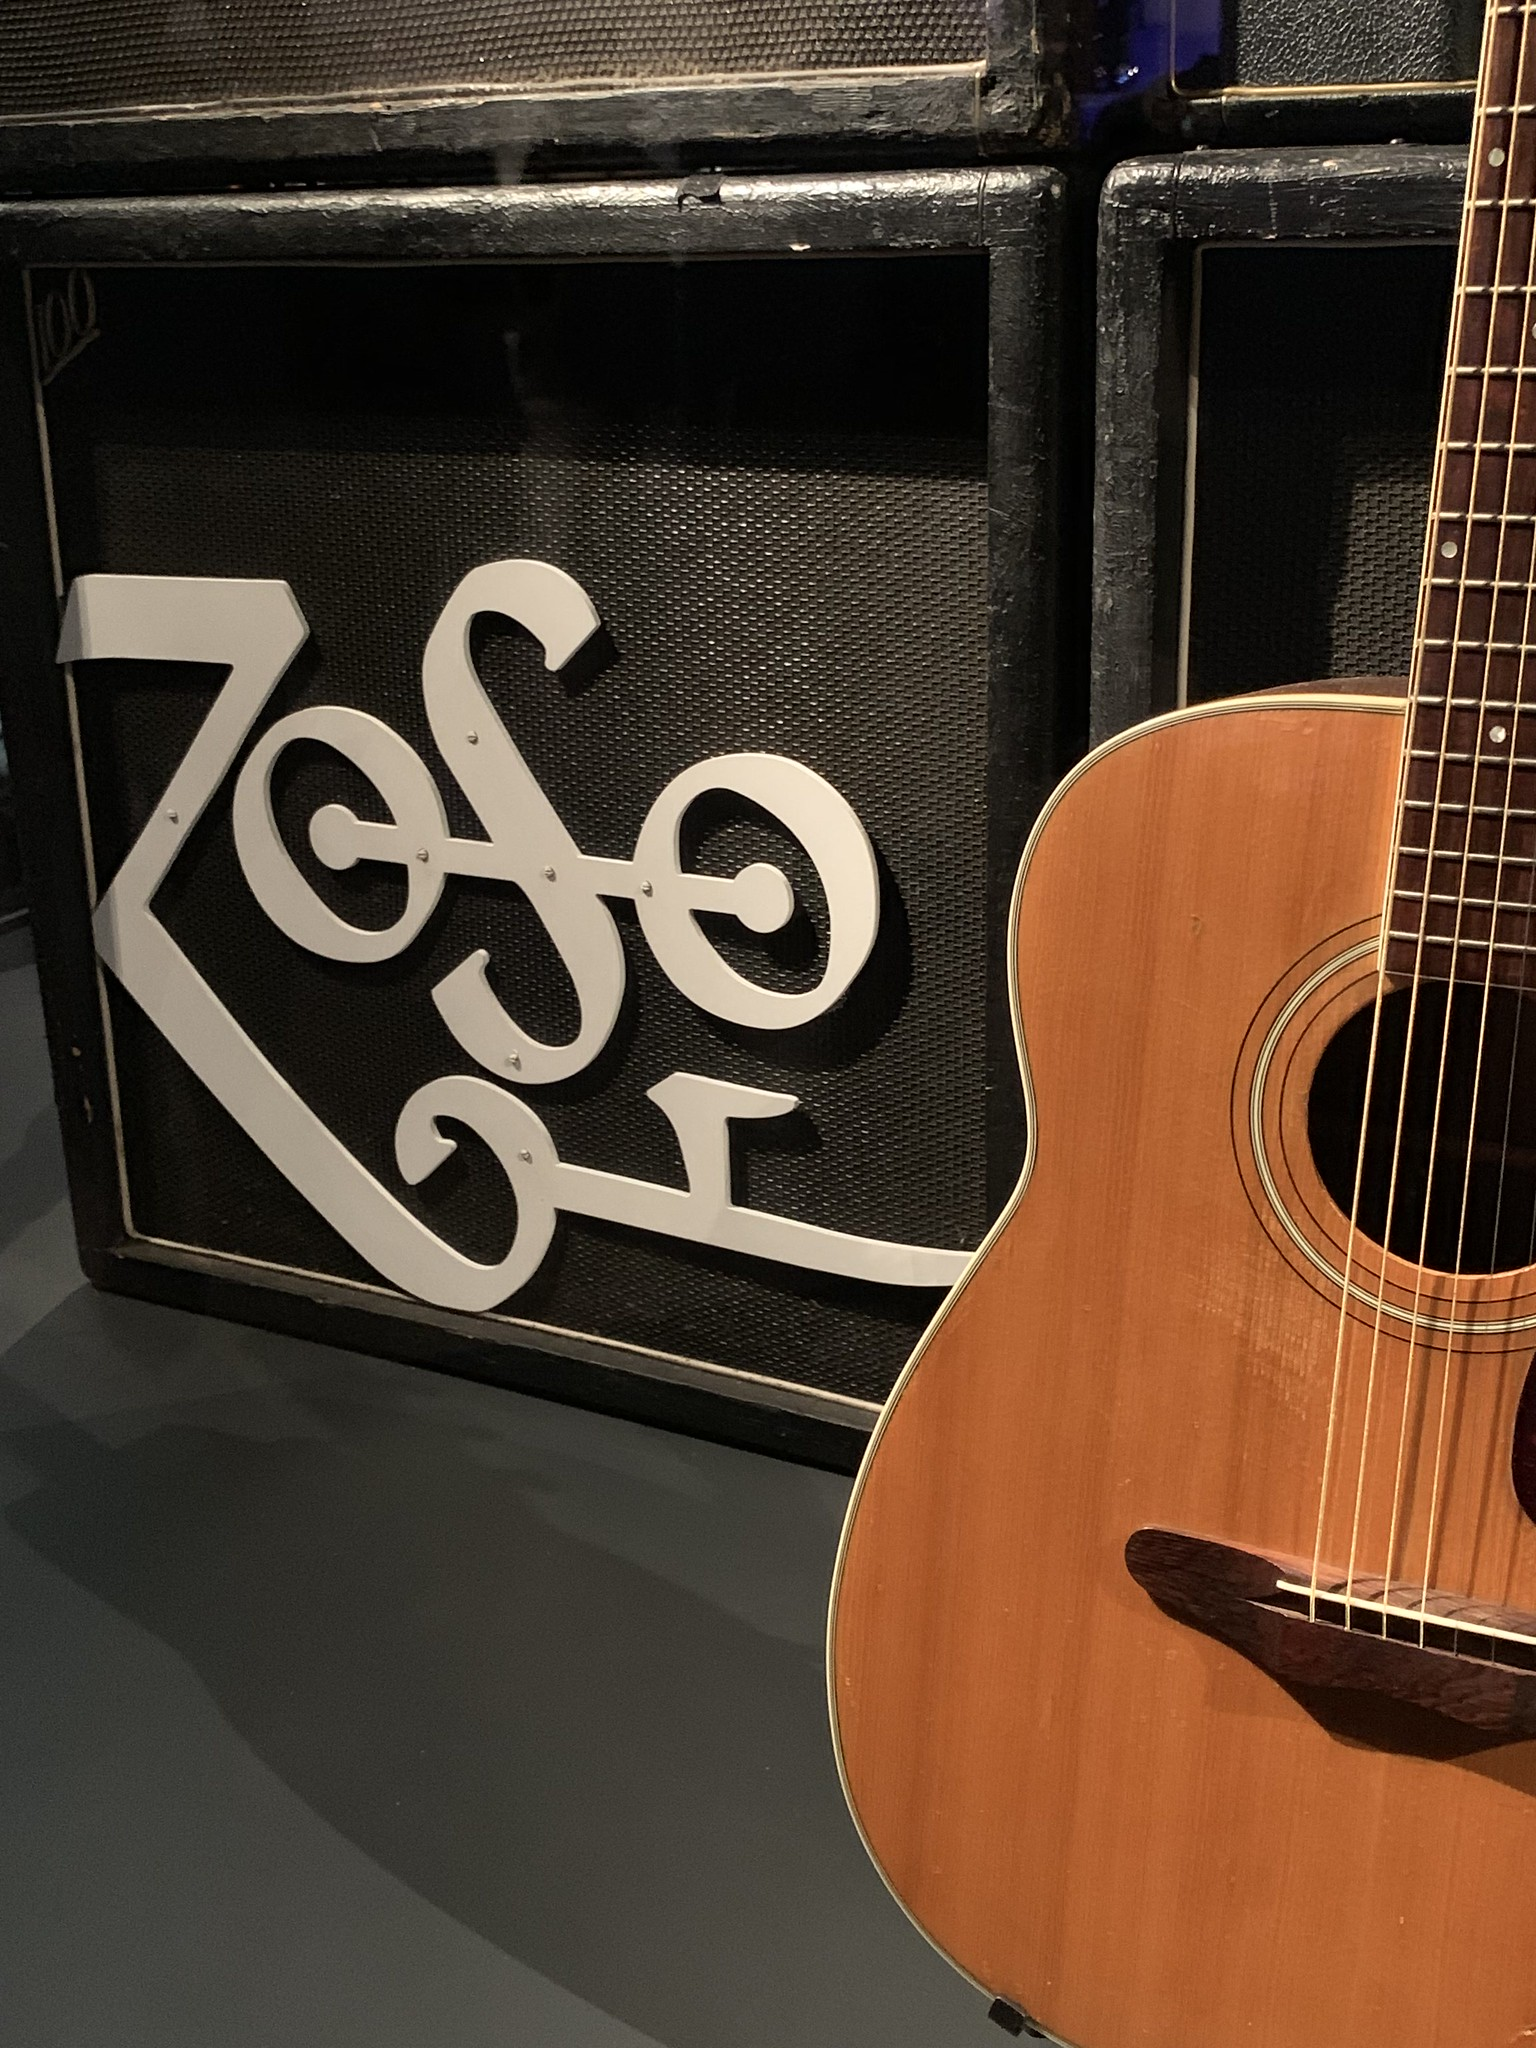 Detail on Jimmy Page's Rig